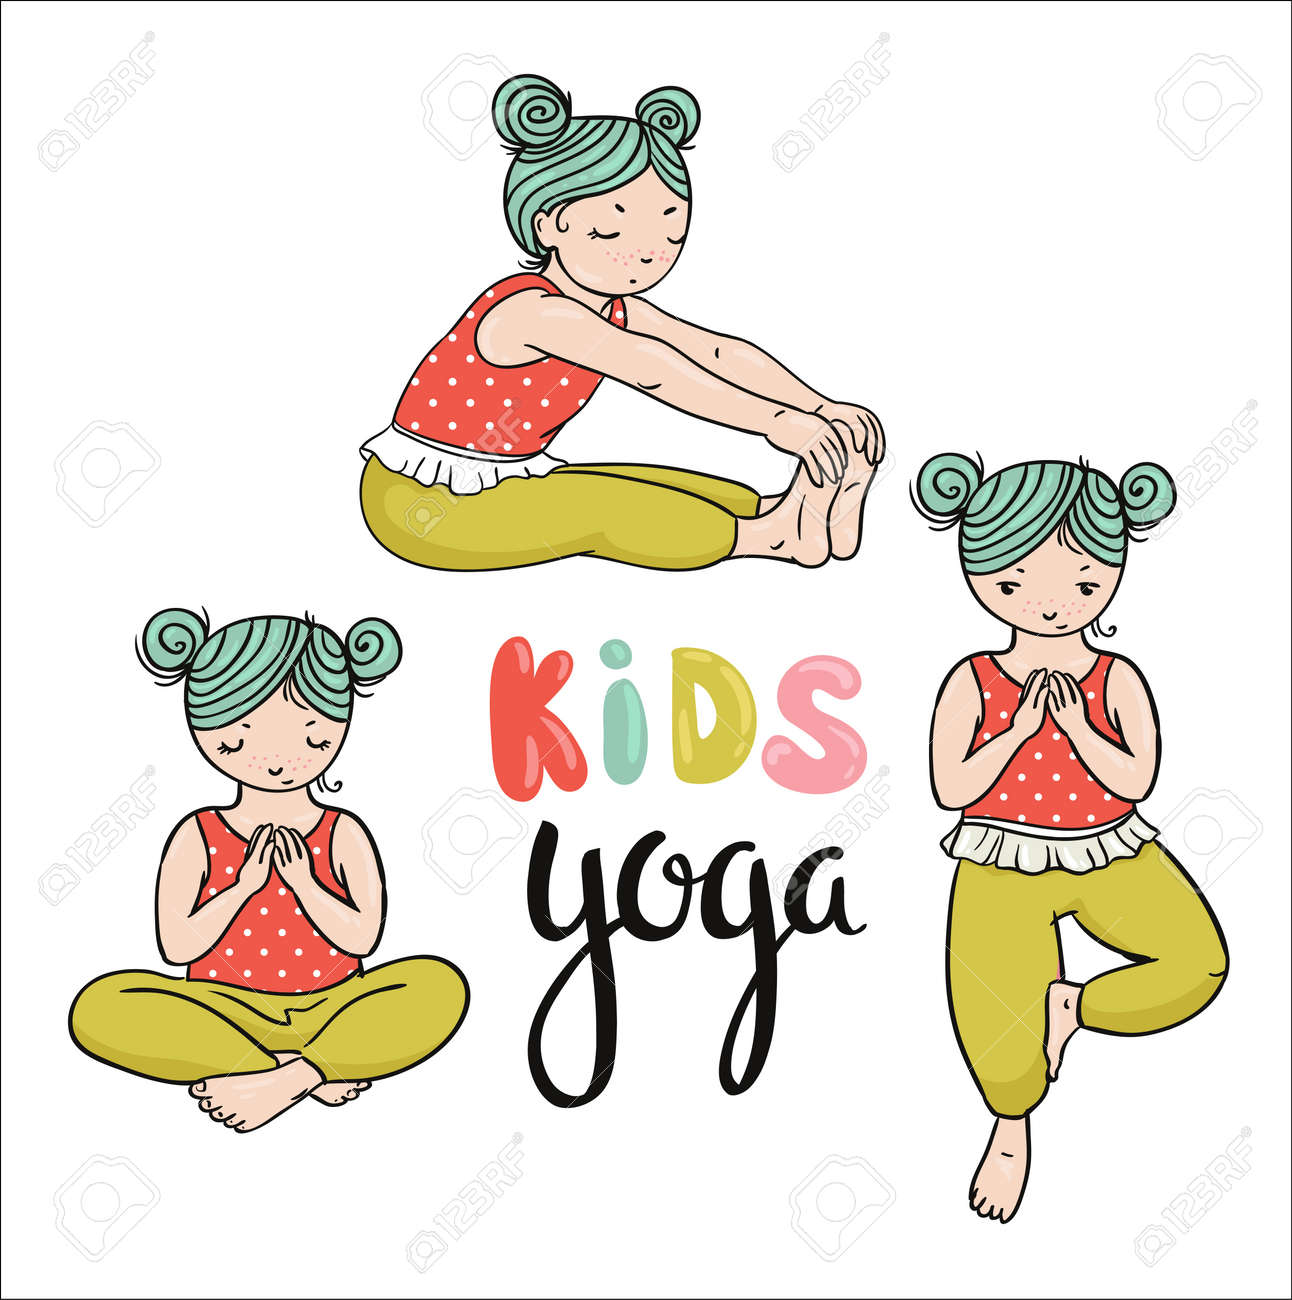 Kid Yoga Logo Gymnastics For Children Healthy Lifestyle Poster Royalty Free Cliparts Vectors And Stock Illustration Image 78926715